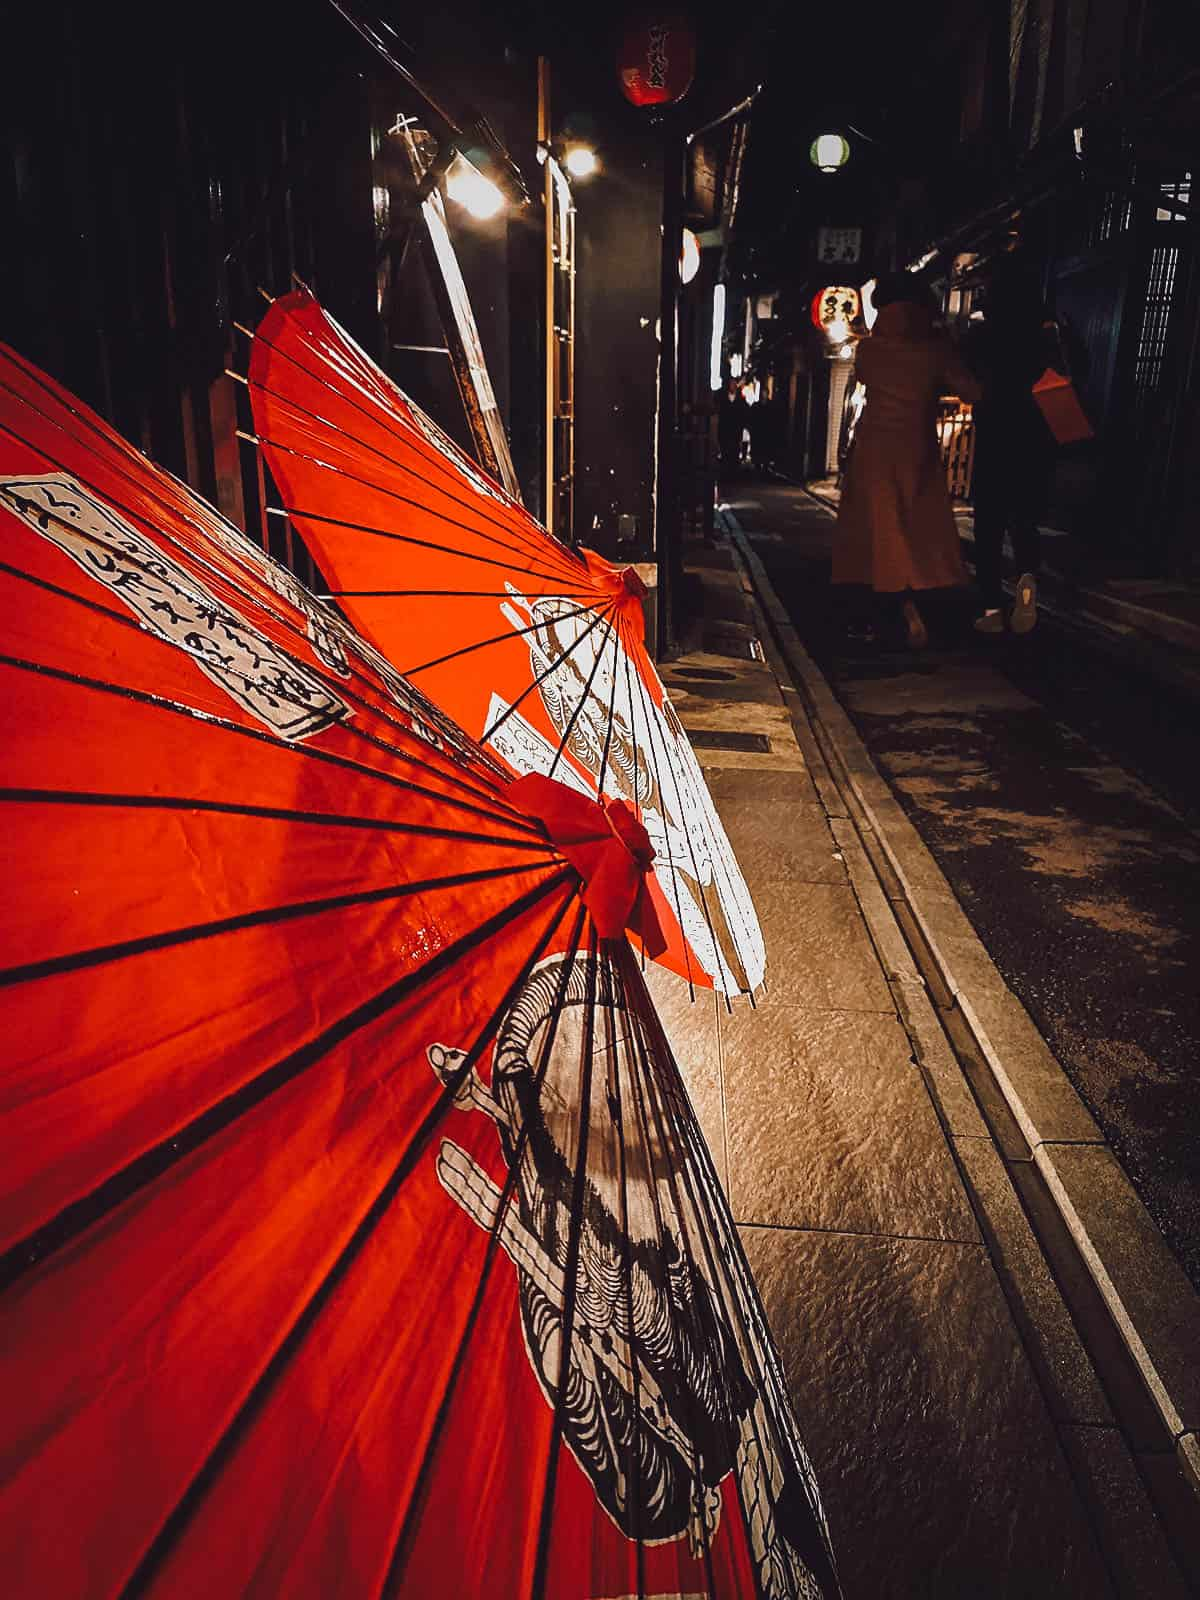 Traditional Japanese paper umbrellas